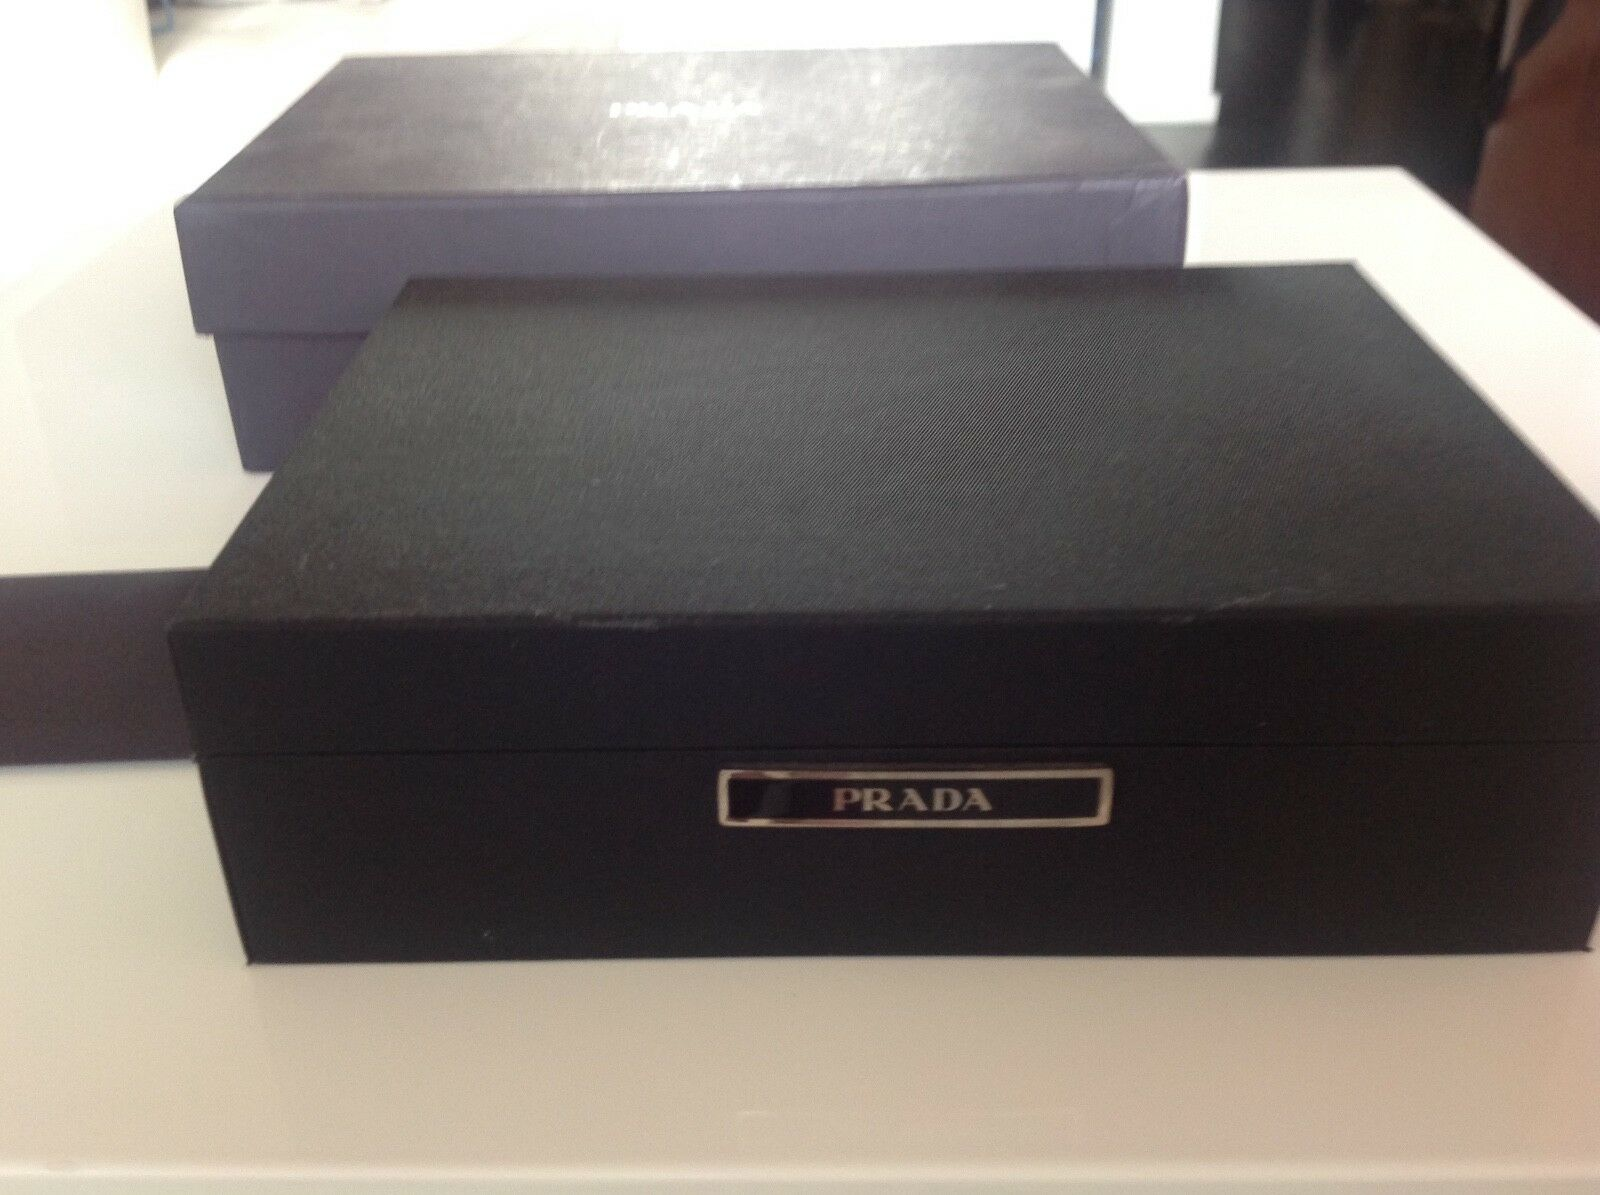 VERY RARE  PRADA UNIQUE GIFT  2  Sets of Playing autods in a Prada scatola.  grande vendita